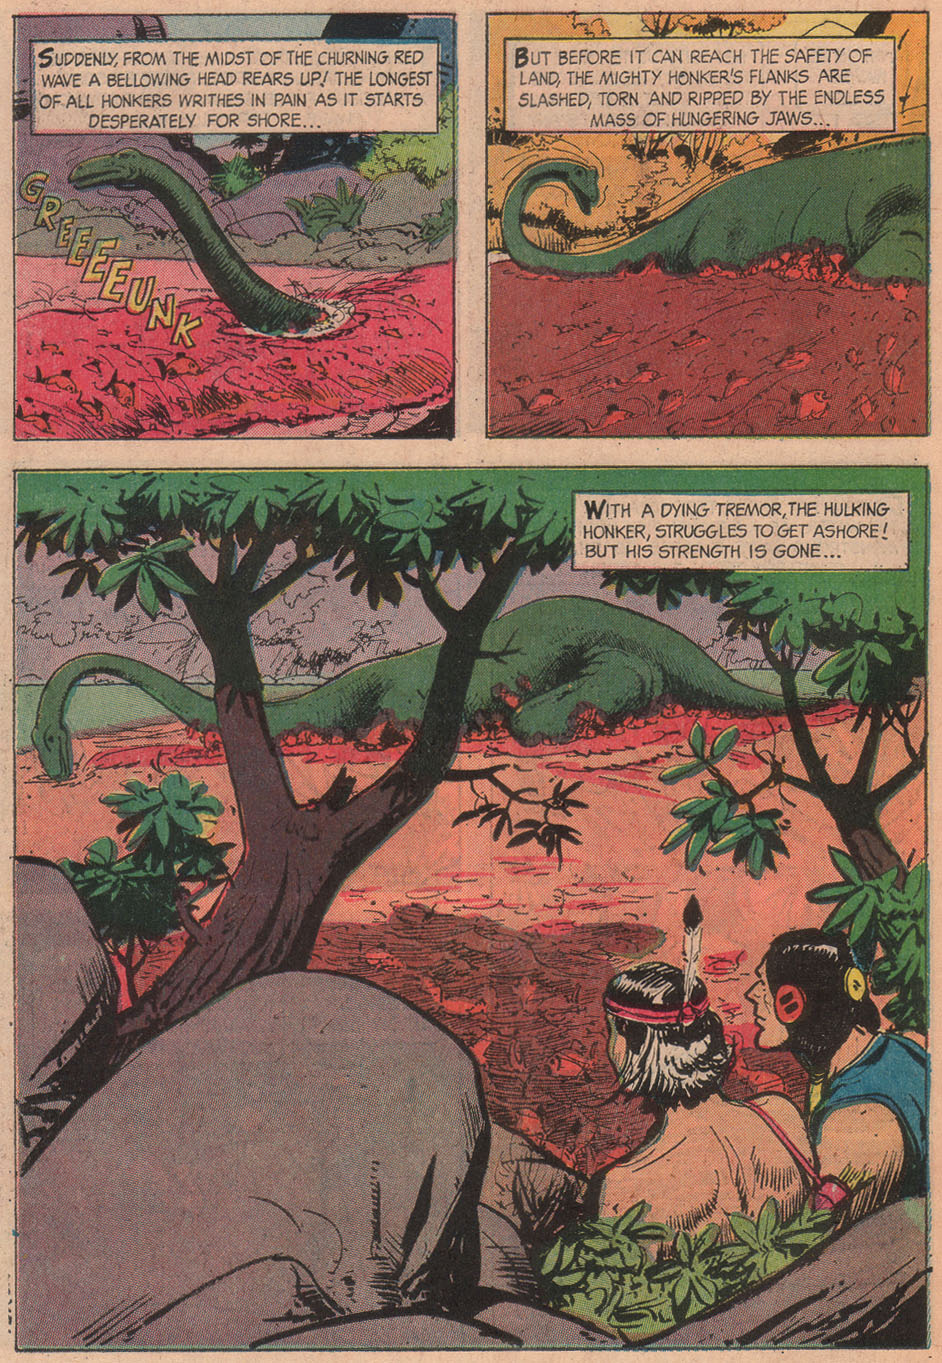 Read online Turok, Son of Stone comic -  Issue #51 - 26